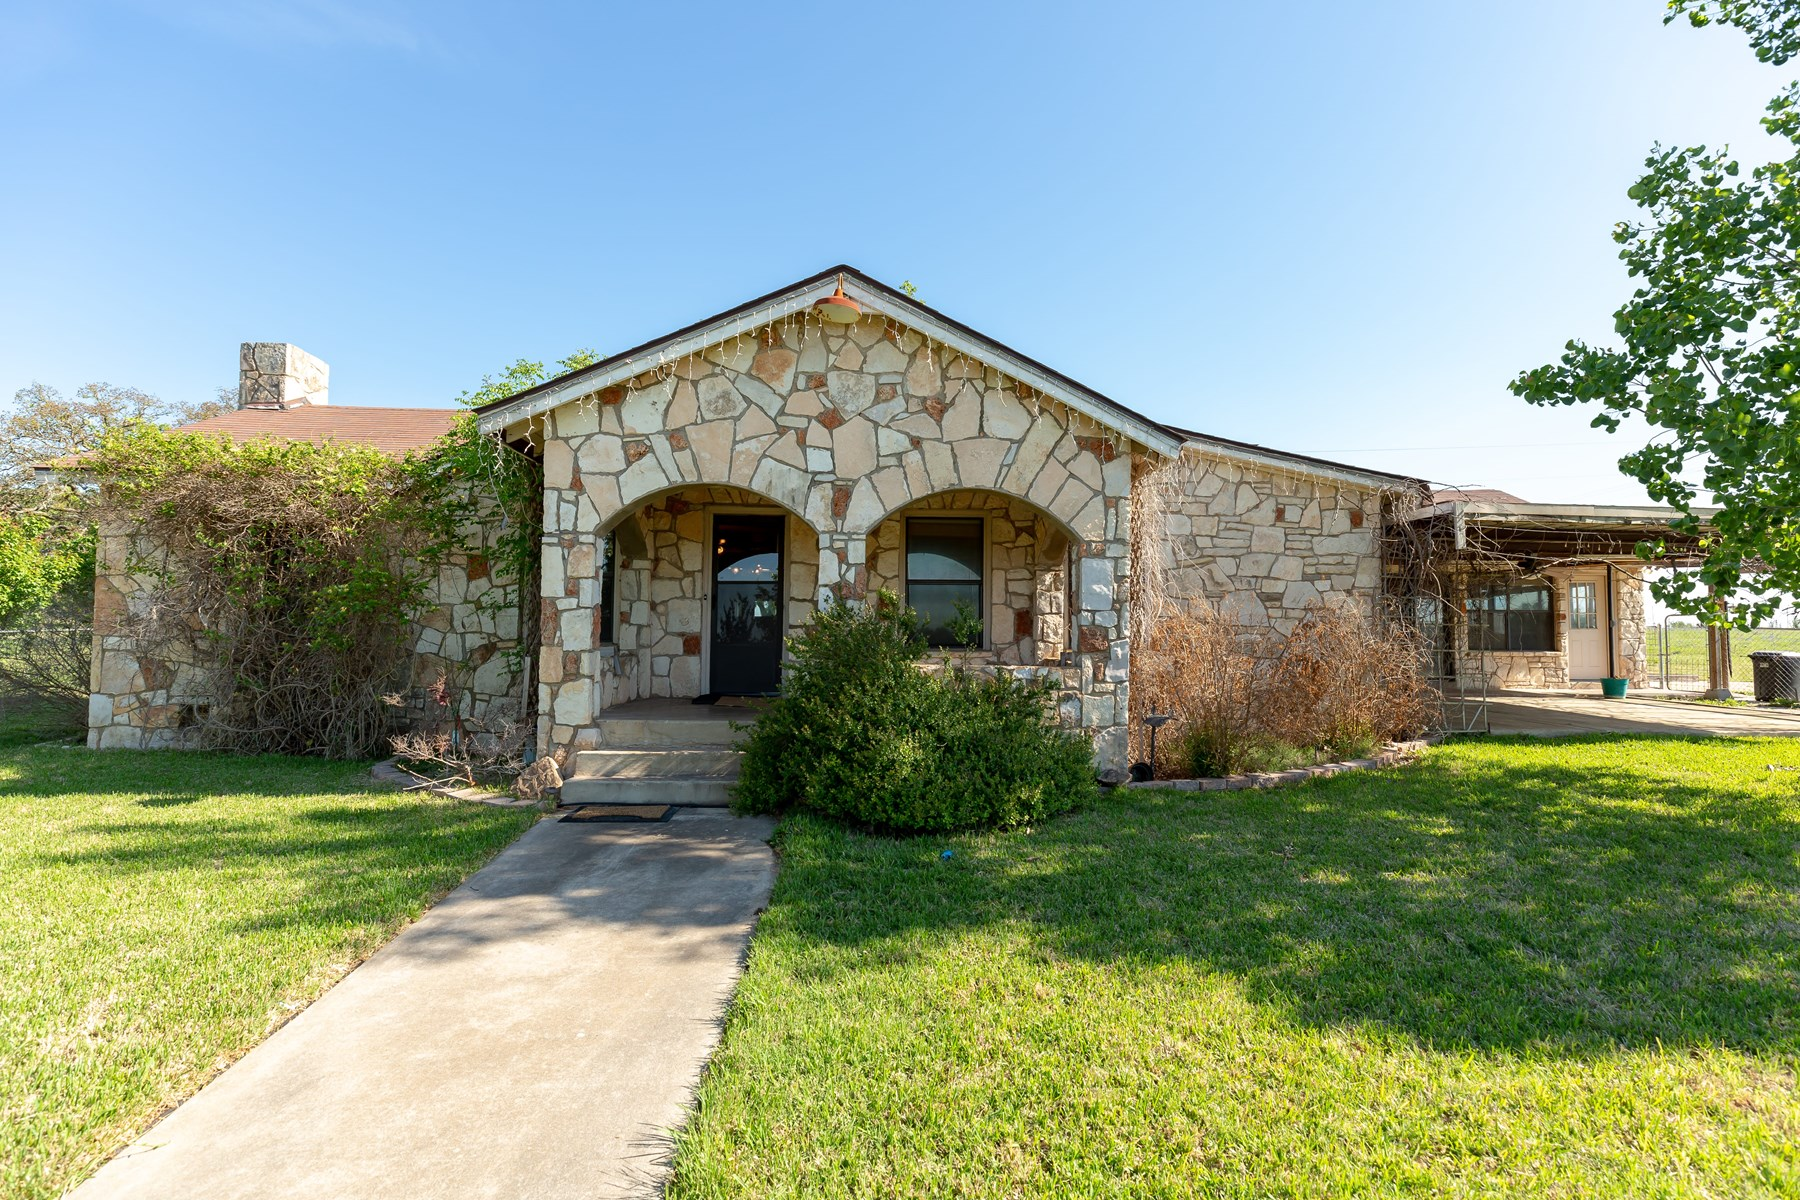 Hill Country Home For Sale - Ingram TX